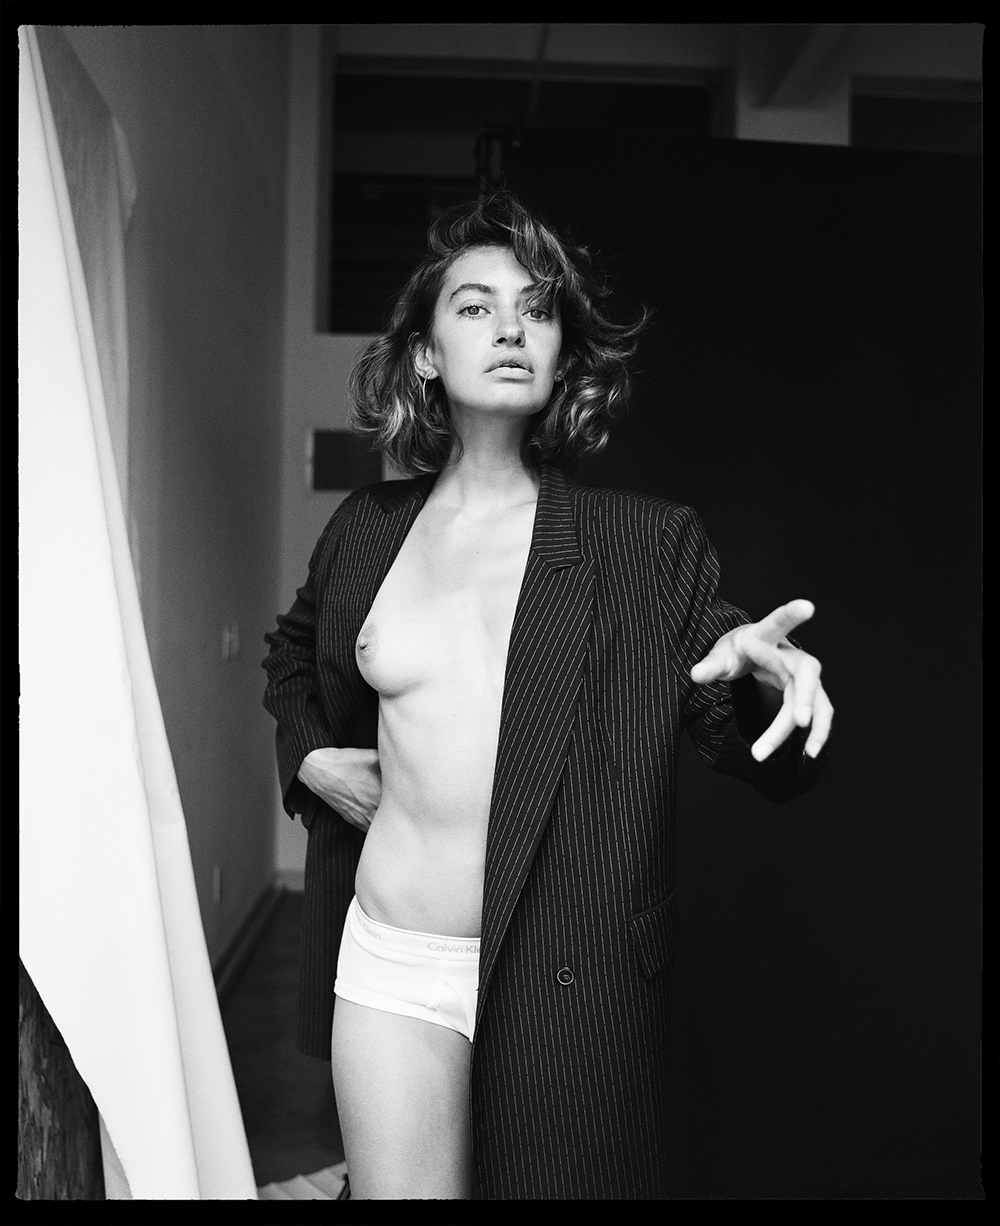 Dancing Croatian - Black and white photo of Marina Komesarovic by Nick Sabatalo for MONROWE Magazine